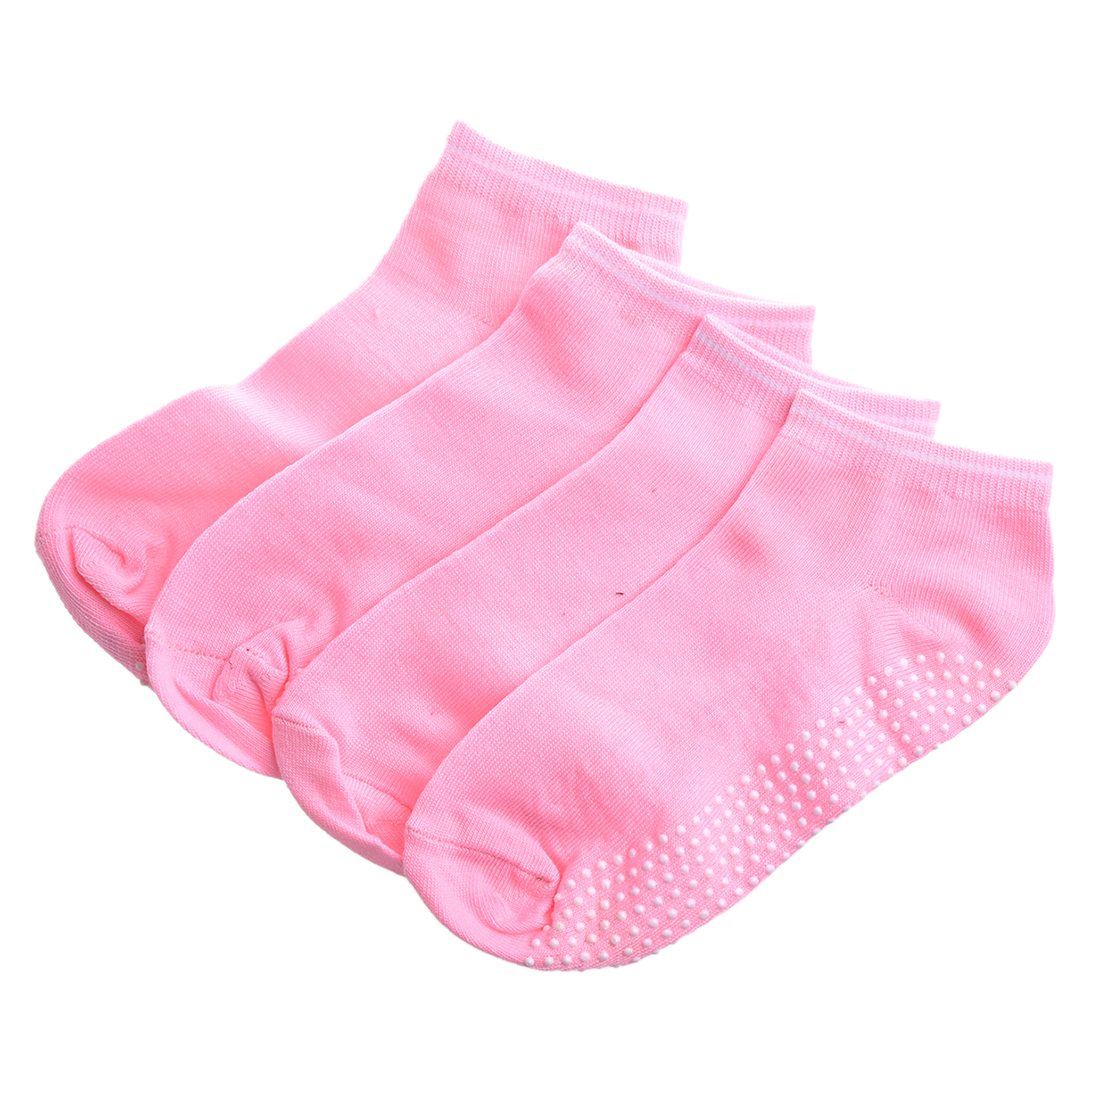 Hot 2 pairs Socks with non-slip massage Granules for women - Pink